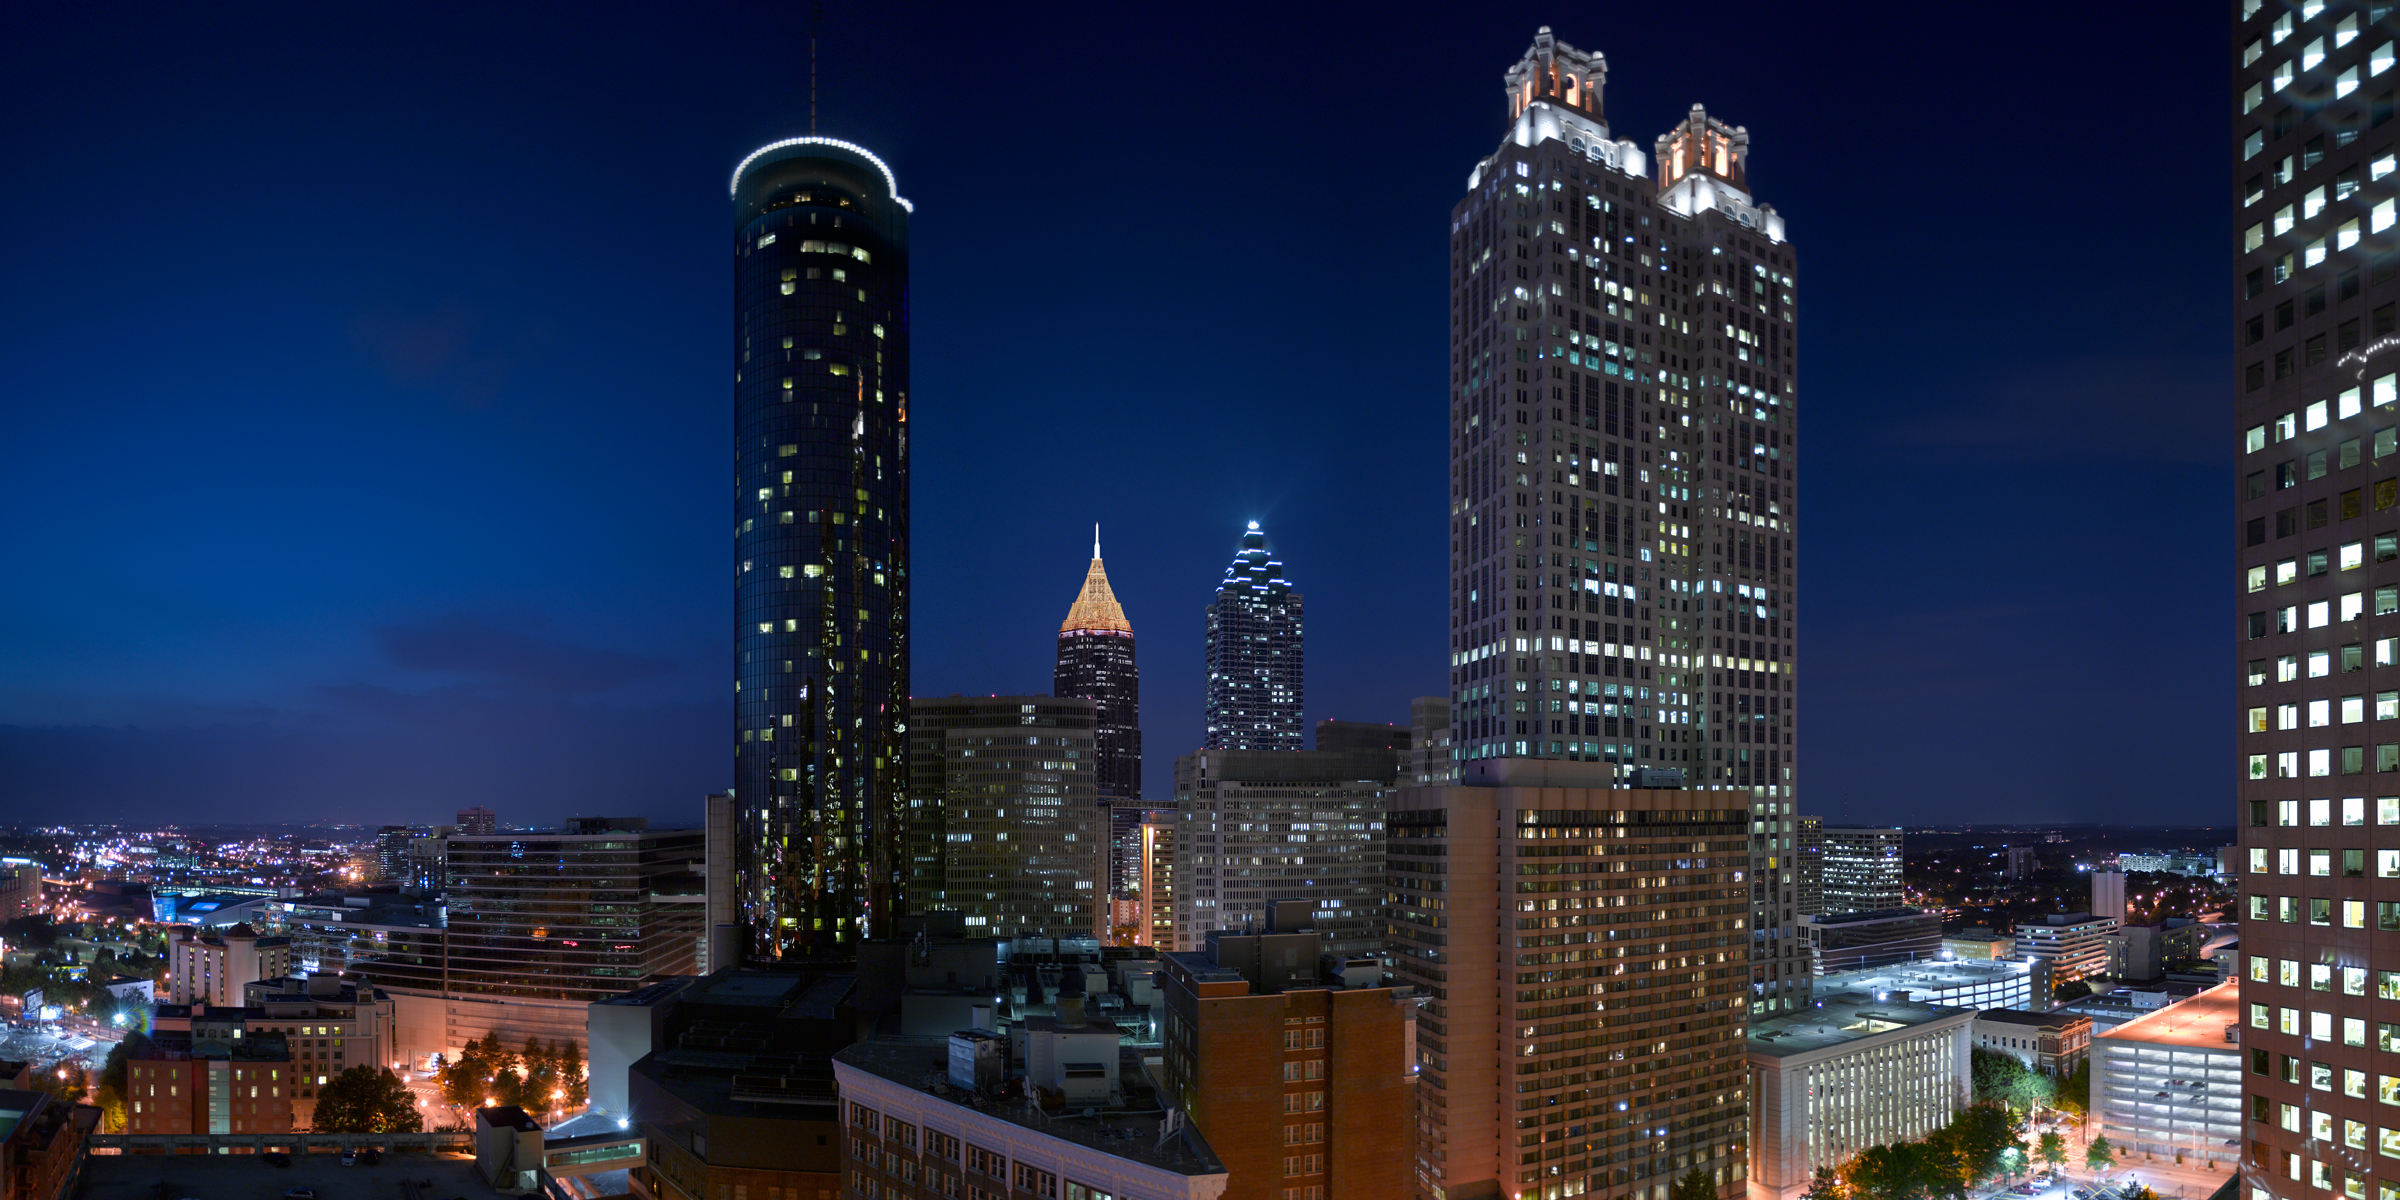 Richard Lund, Atlanta skyline at night, translite of Atlanta